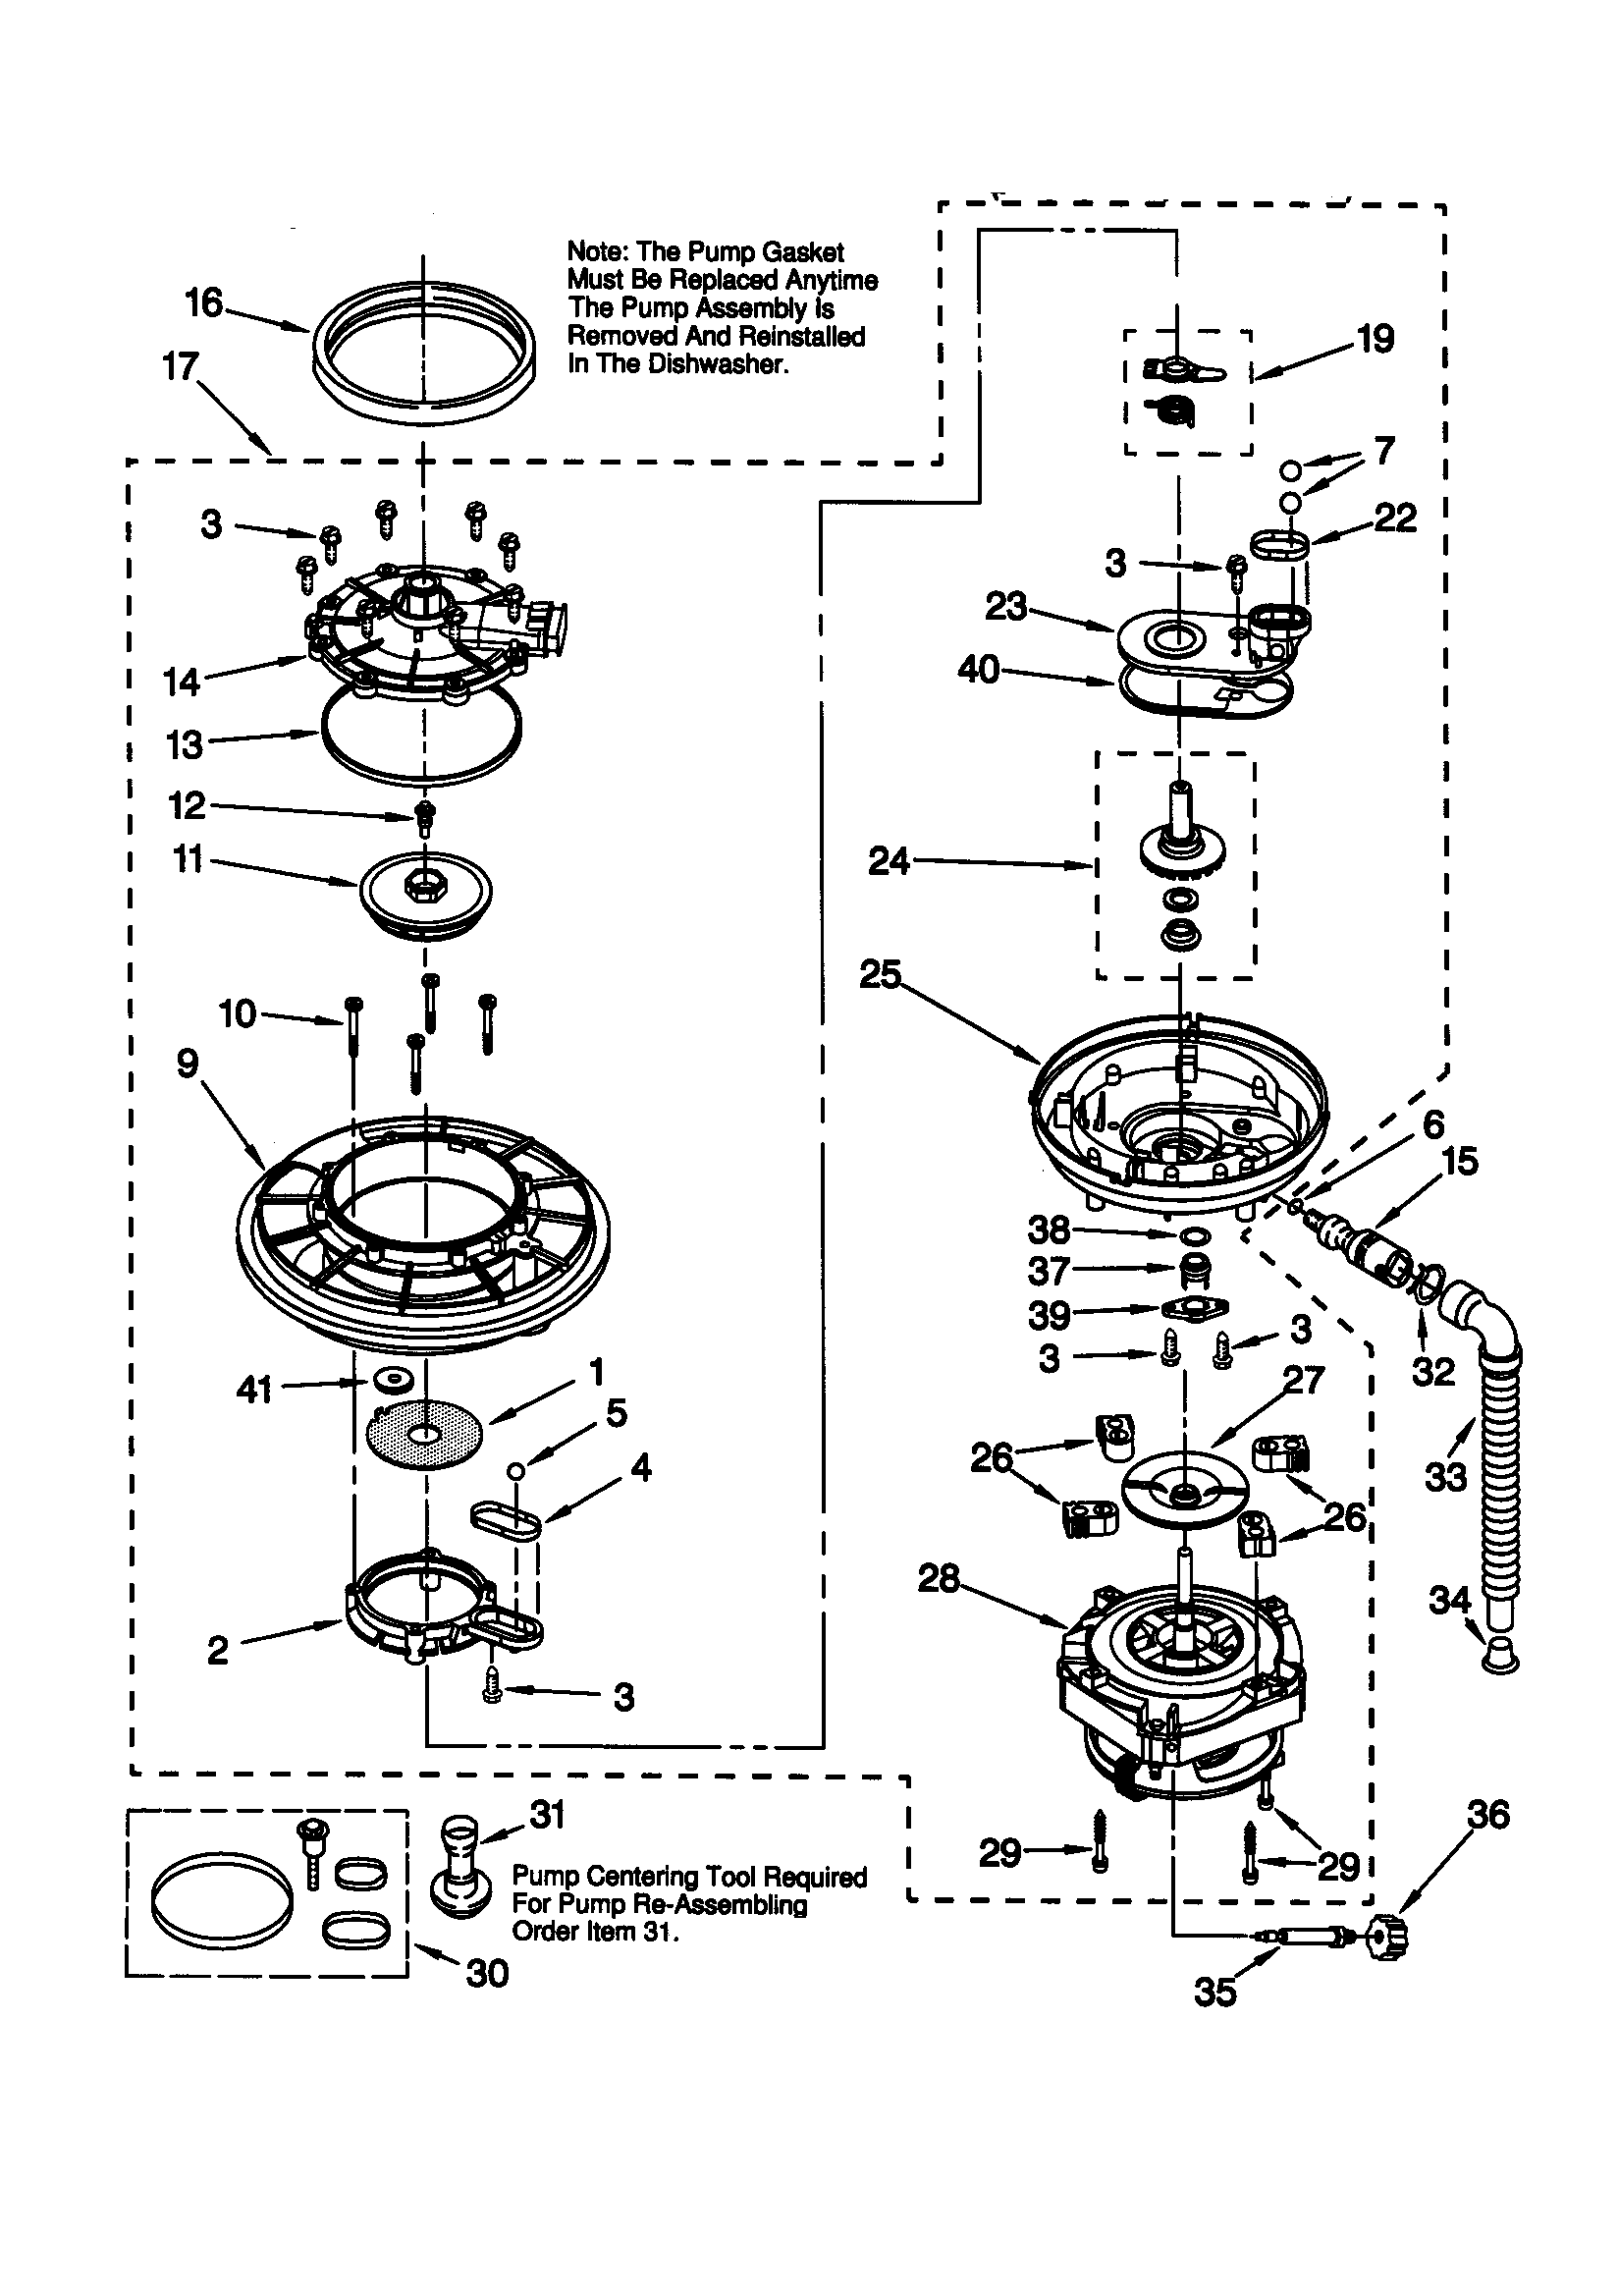 kenmore elite parts diagram swm 3 wiring 66515982990 timer - stove clocks and appliance timers